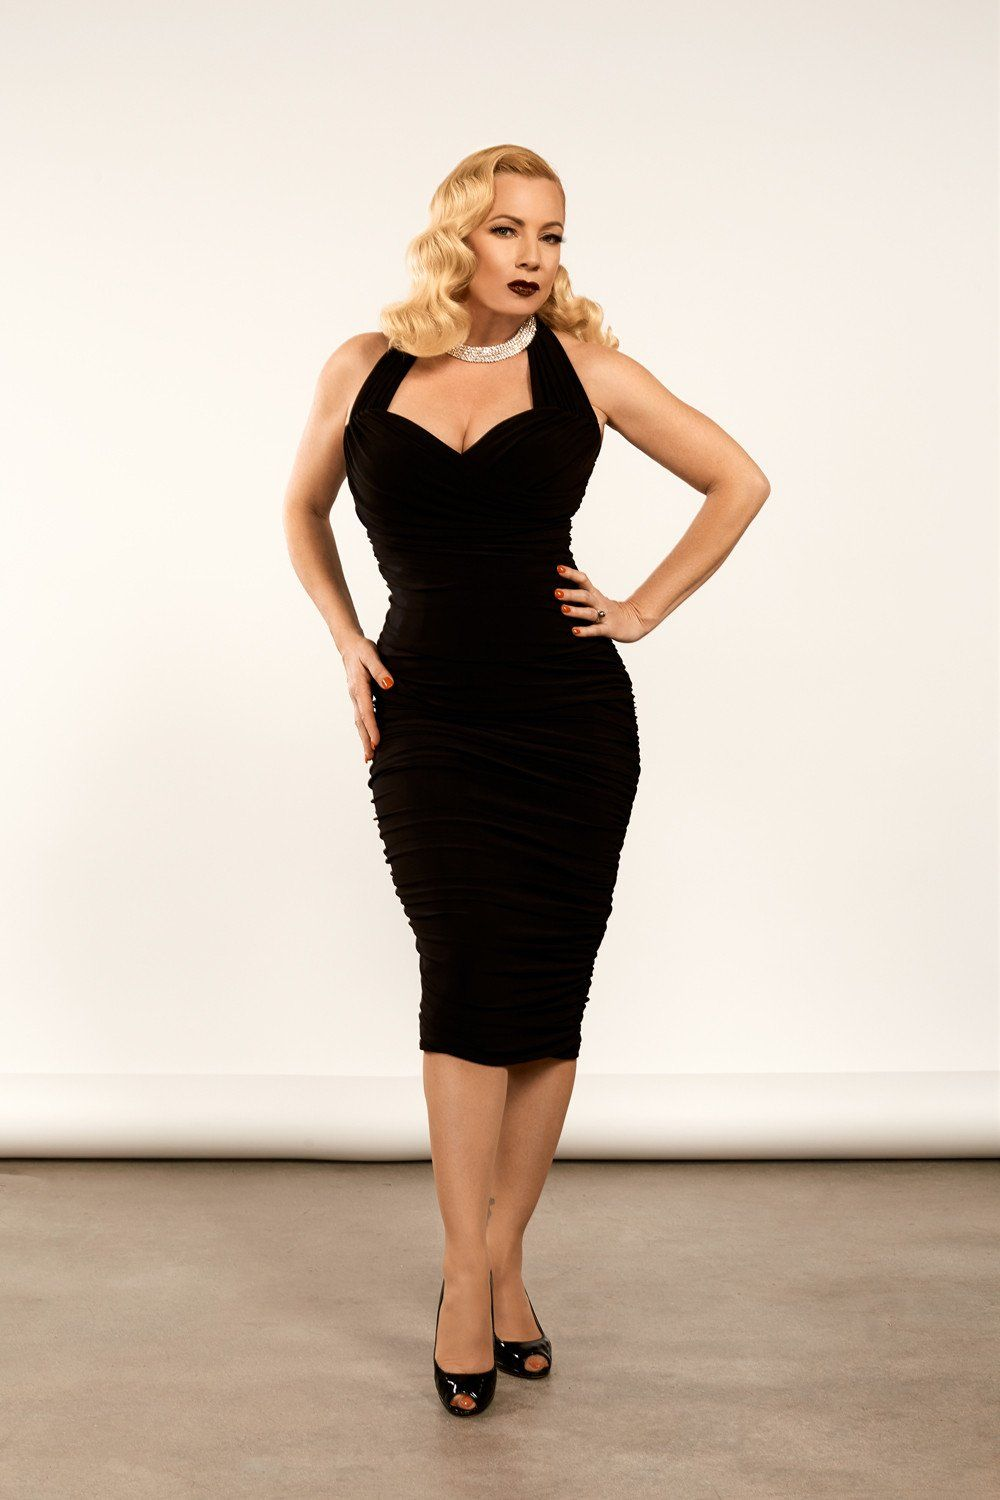 Traci Dress in Black by Traci Lords